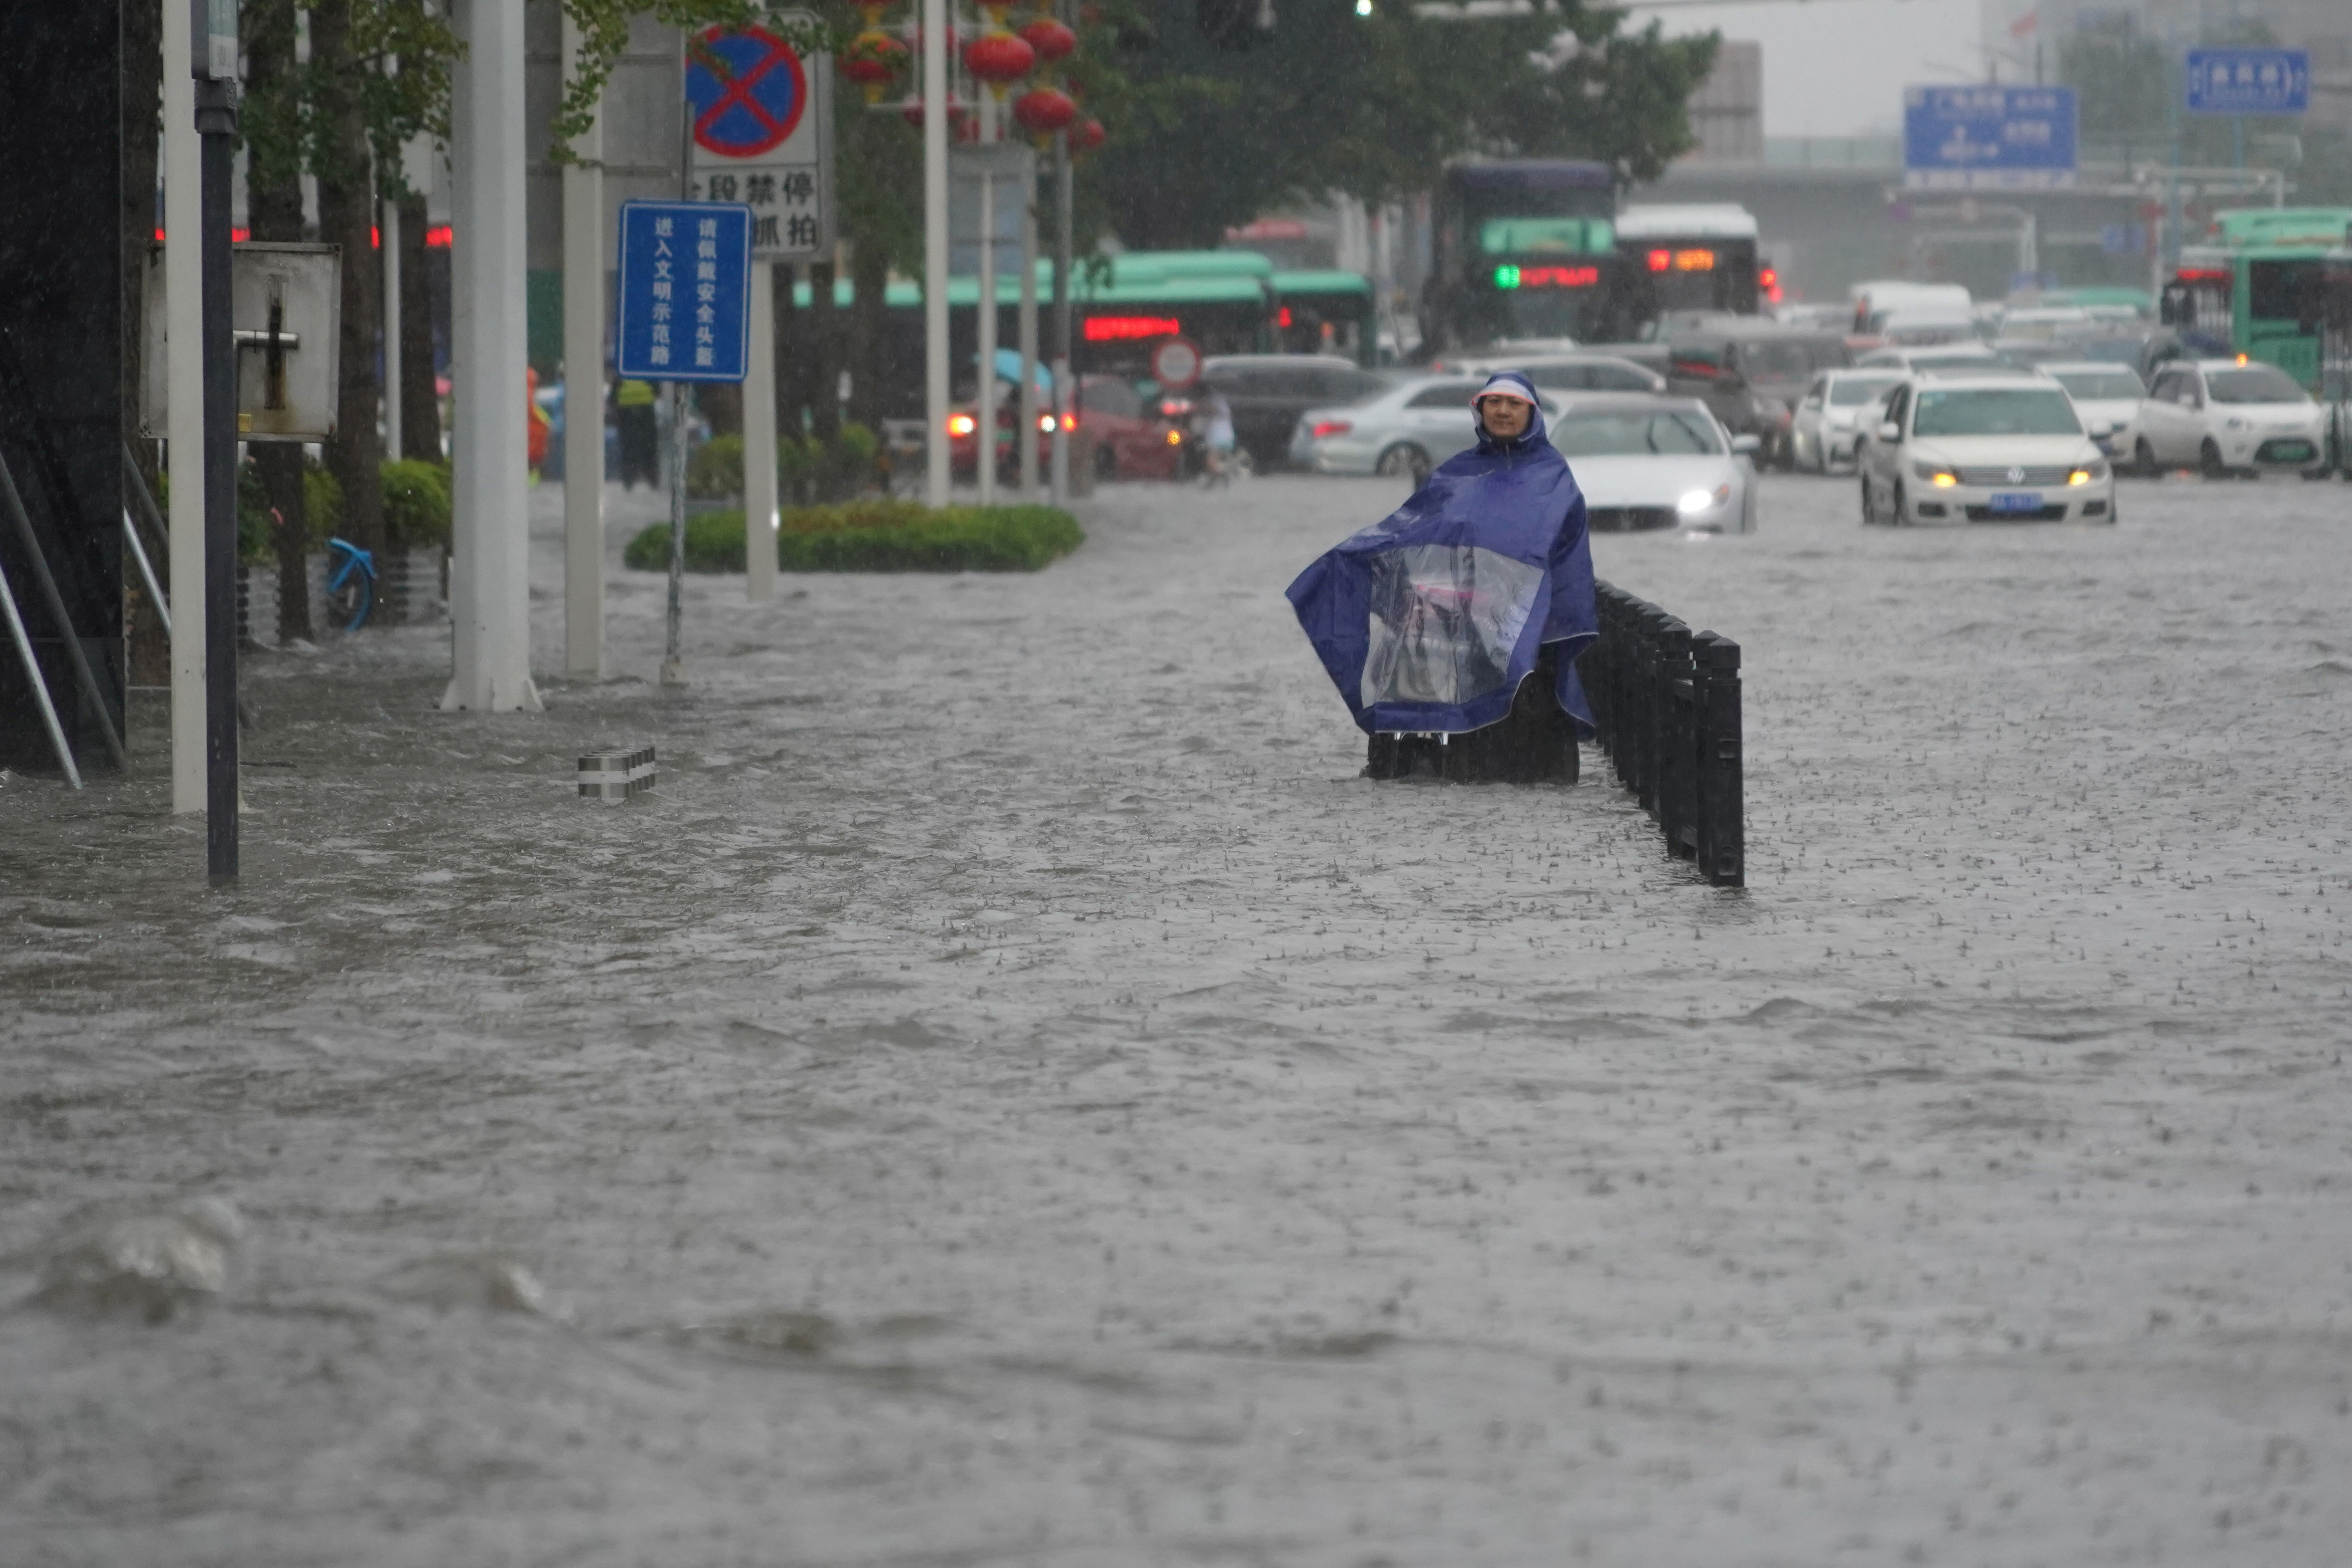 A resident wearing a rain cover stands on a flooded road in Zhengzhou, Henan province, China July 20, 2021. cnsphoto via REUTERS   ATTENTION EDITORS - THIS IMAGE WAS PROVIDED BY A THIRD PARTY. CHINA OUT.